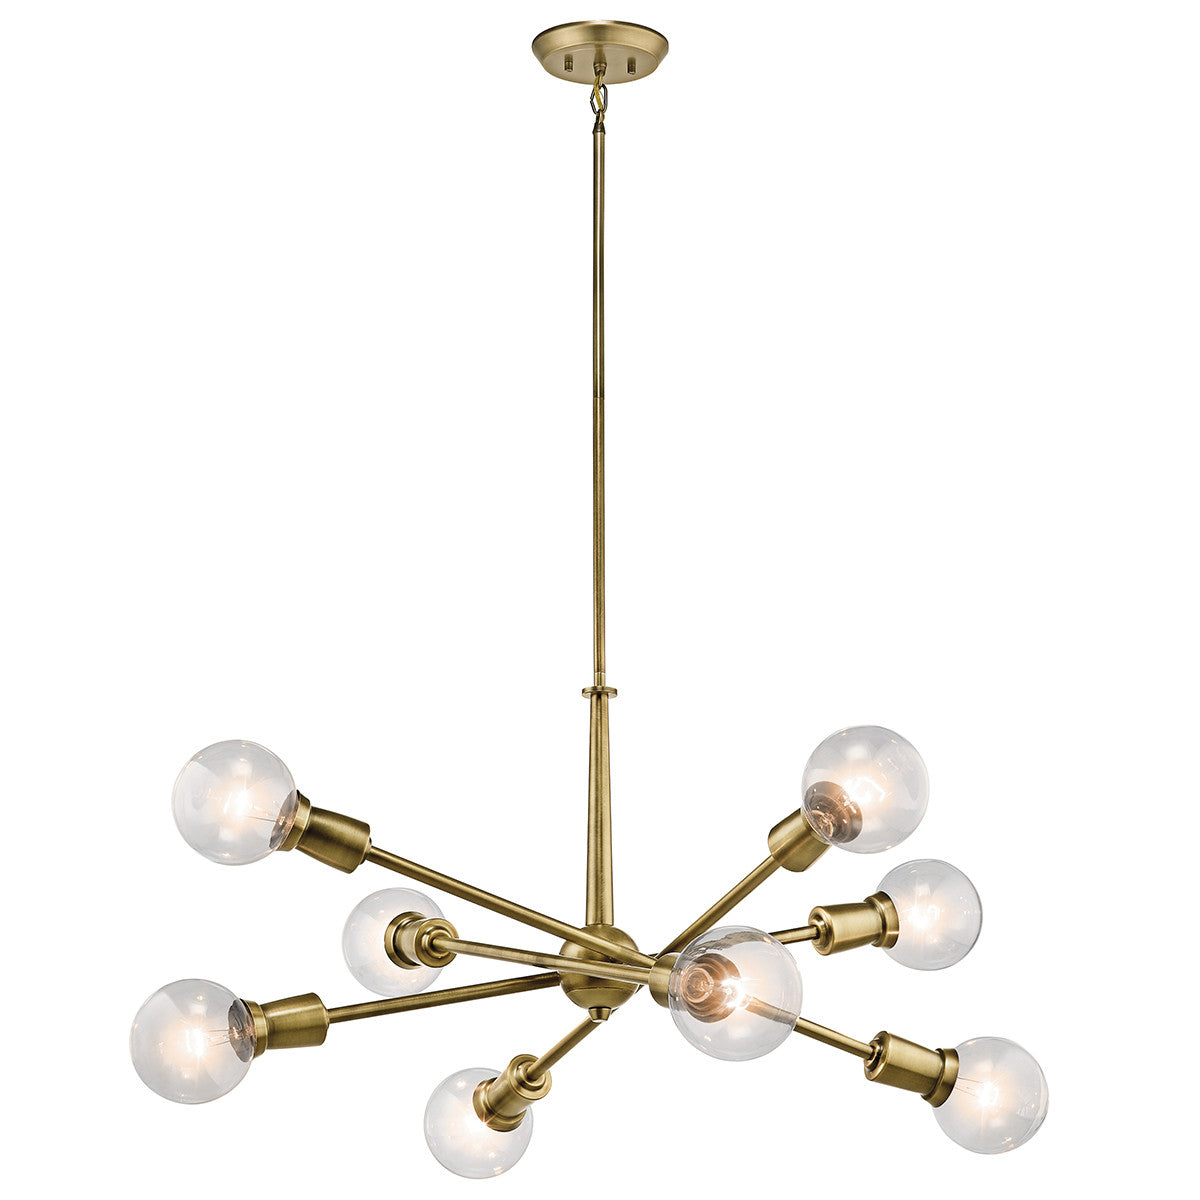 Armstrong Chandelier in Natural Brass by Kichler 43118NBR